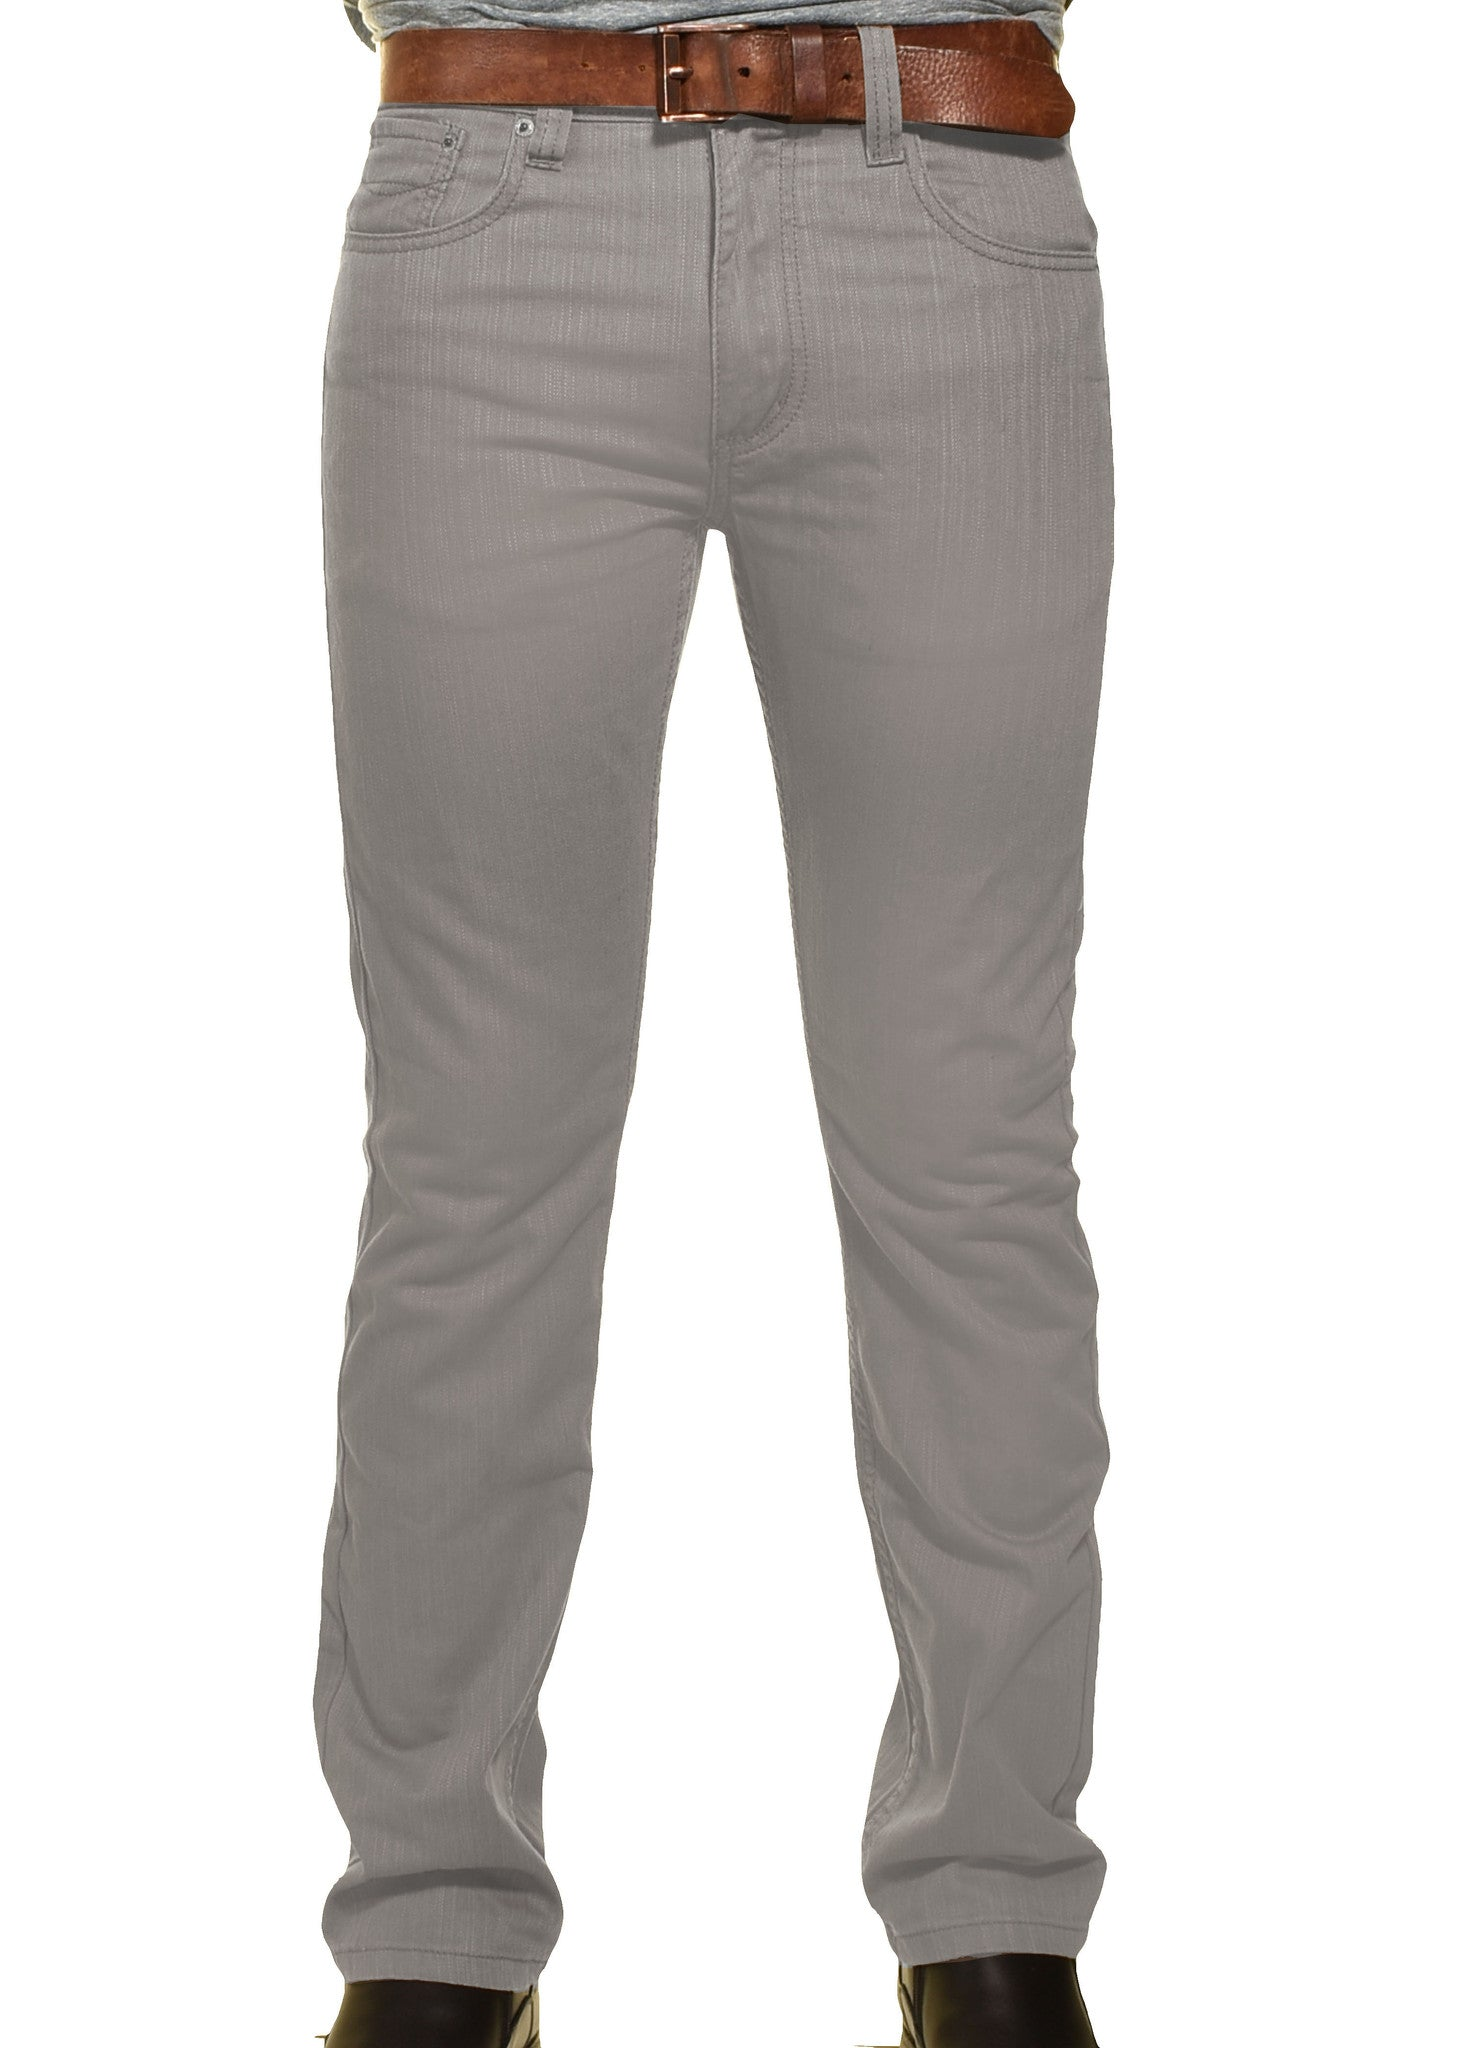 Victorious Mens DL991 Slim Fit Premium Jeans | Light Gray